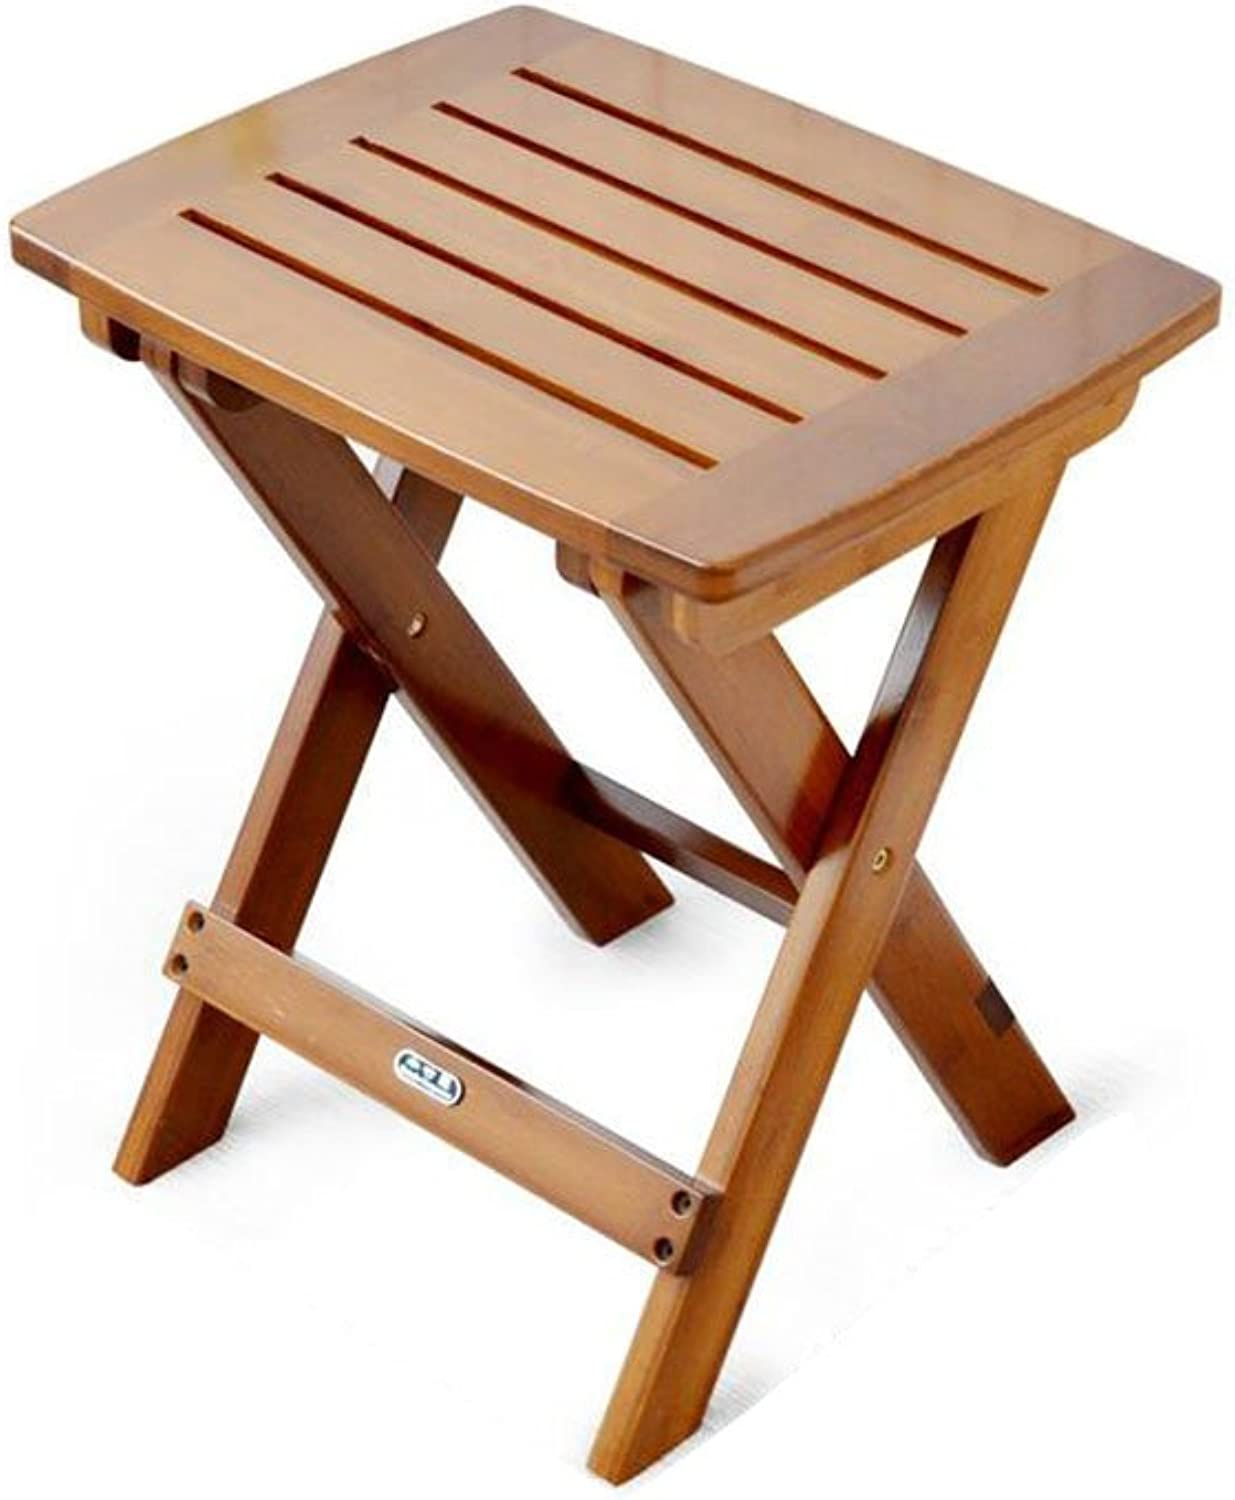 CJC Stools Chair Foldable Bamboo Modern Leisure Retro Fishing Picnic Beach Multifunctional Lightweight Bedroom Bathroom Kitchen Garden Office (color   T1)